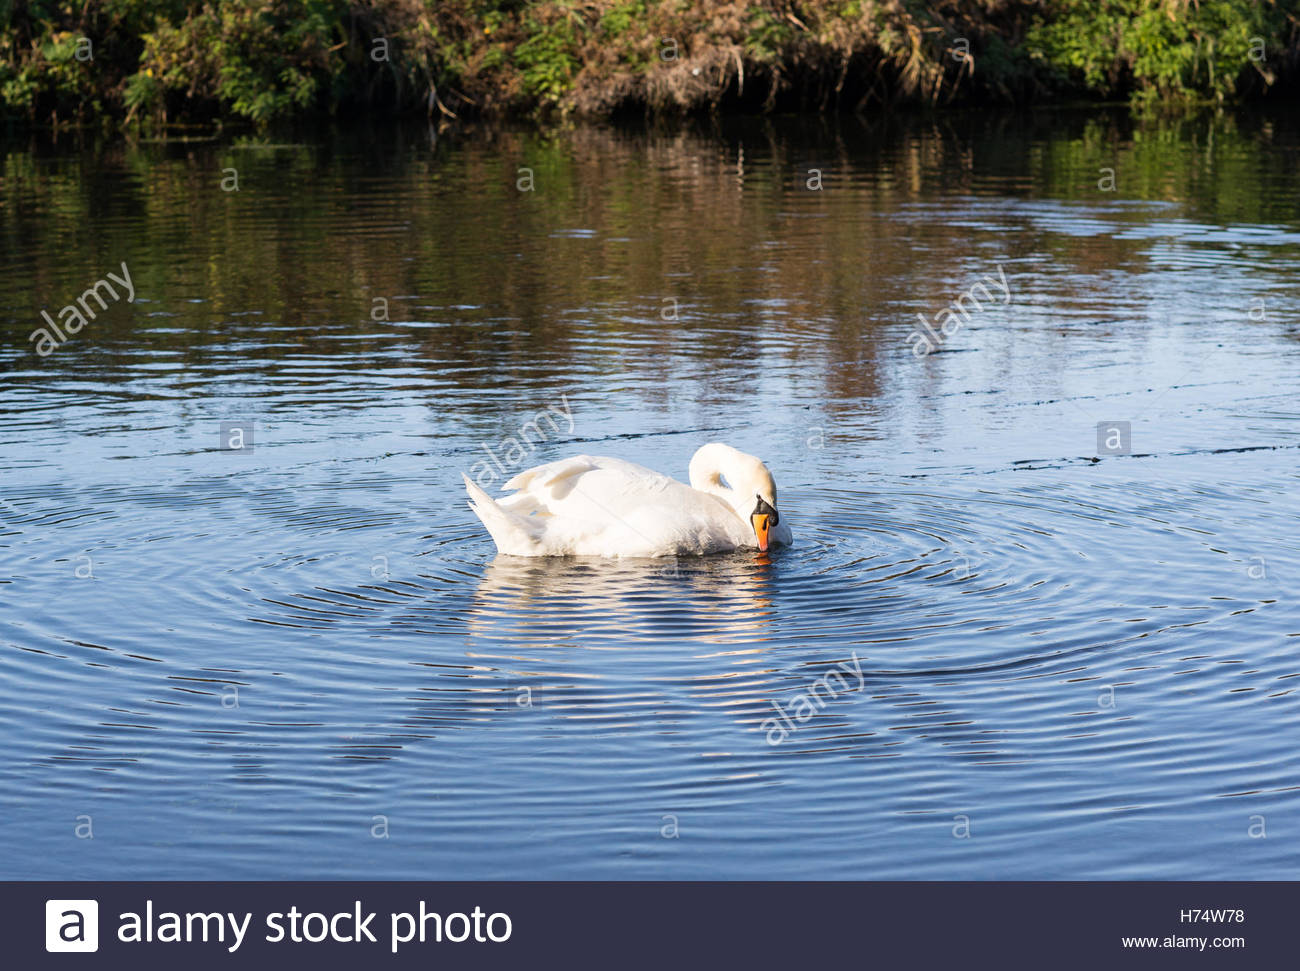 Preening swan causing ripples on the water. - Stock Image